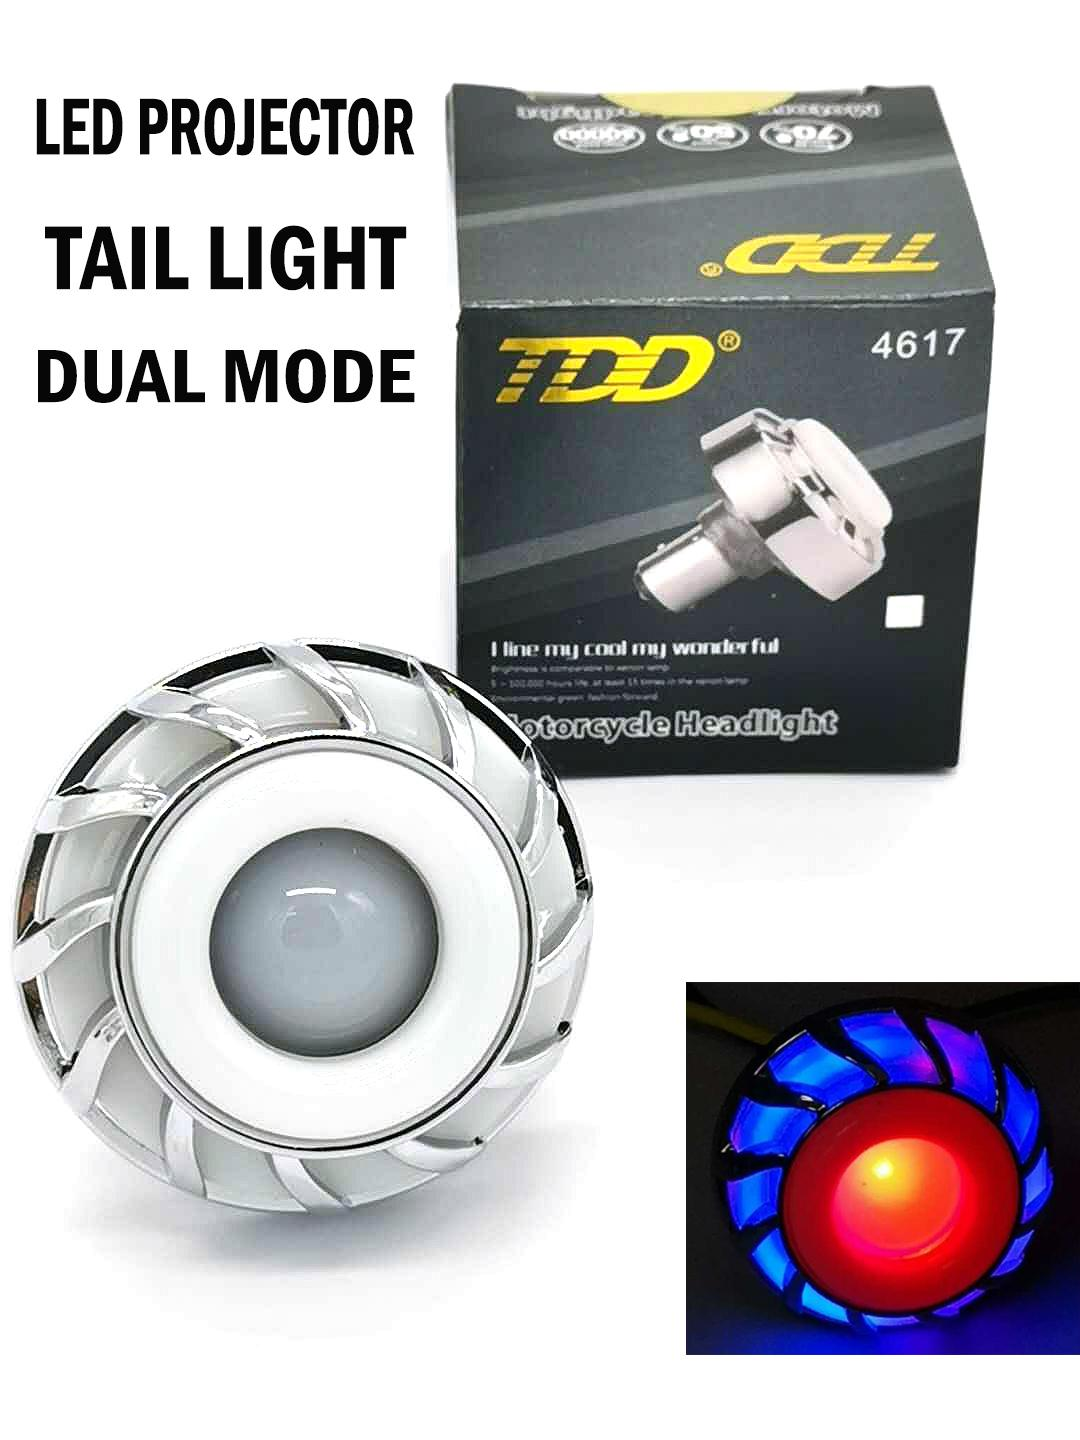 Led Projector Tail Light Dual Mode(rrb) By Gemos Car Accessories.